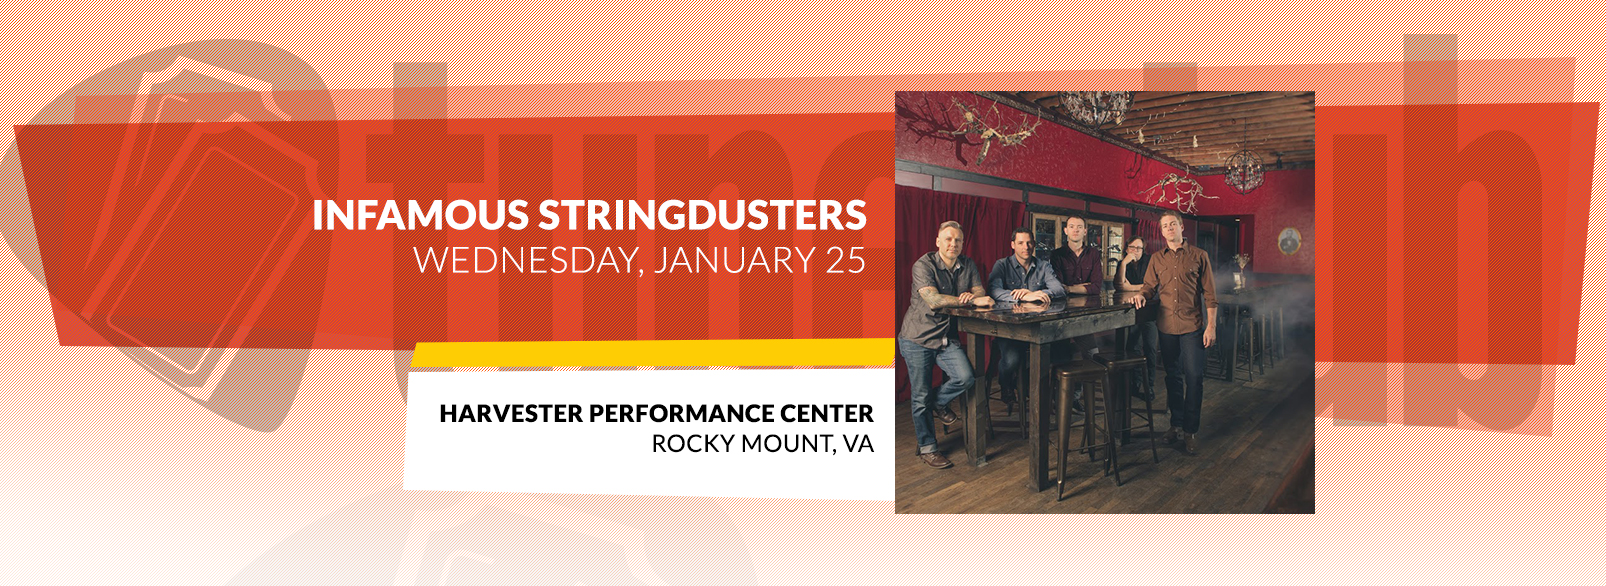 Infamous Stringdusters @ Harvester Performance Center